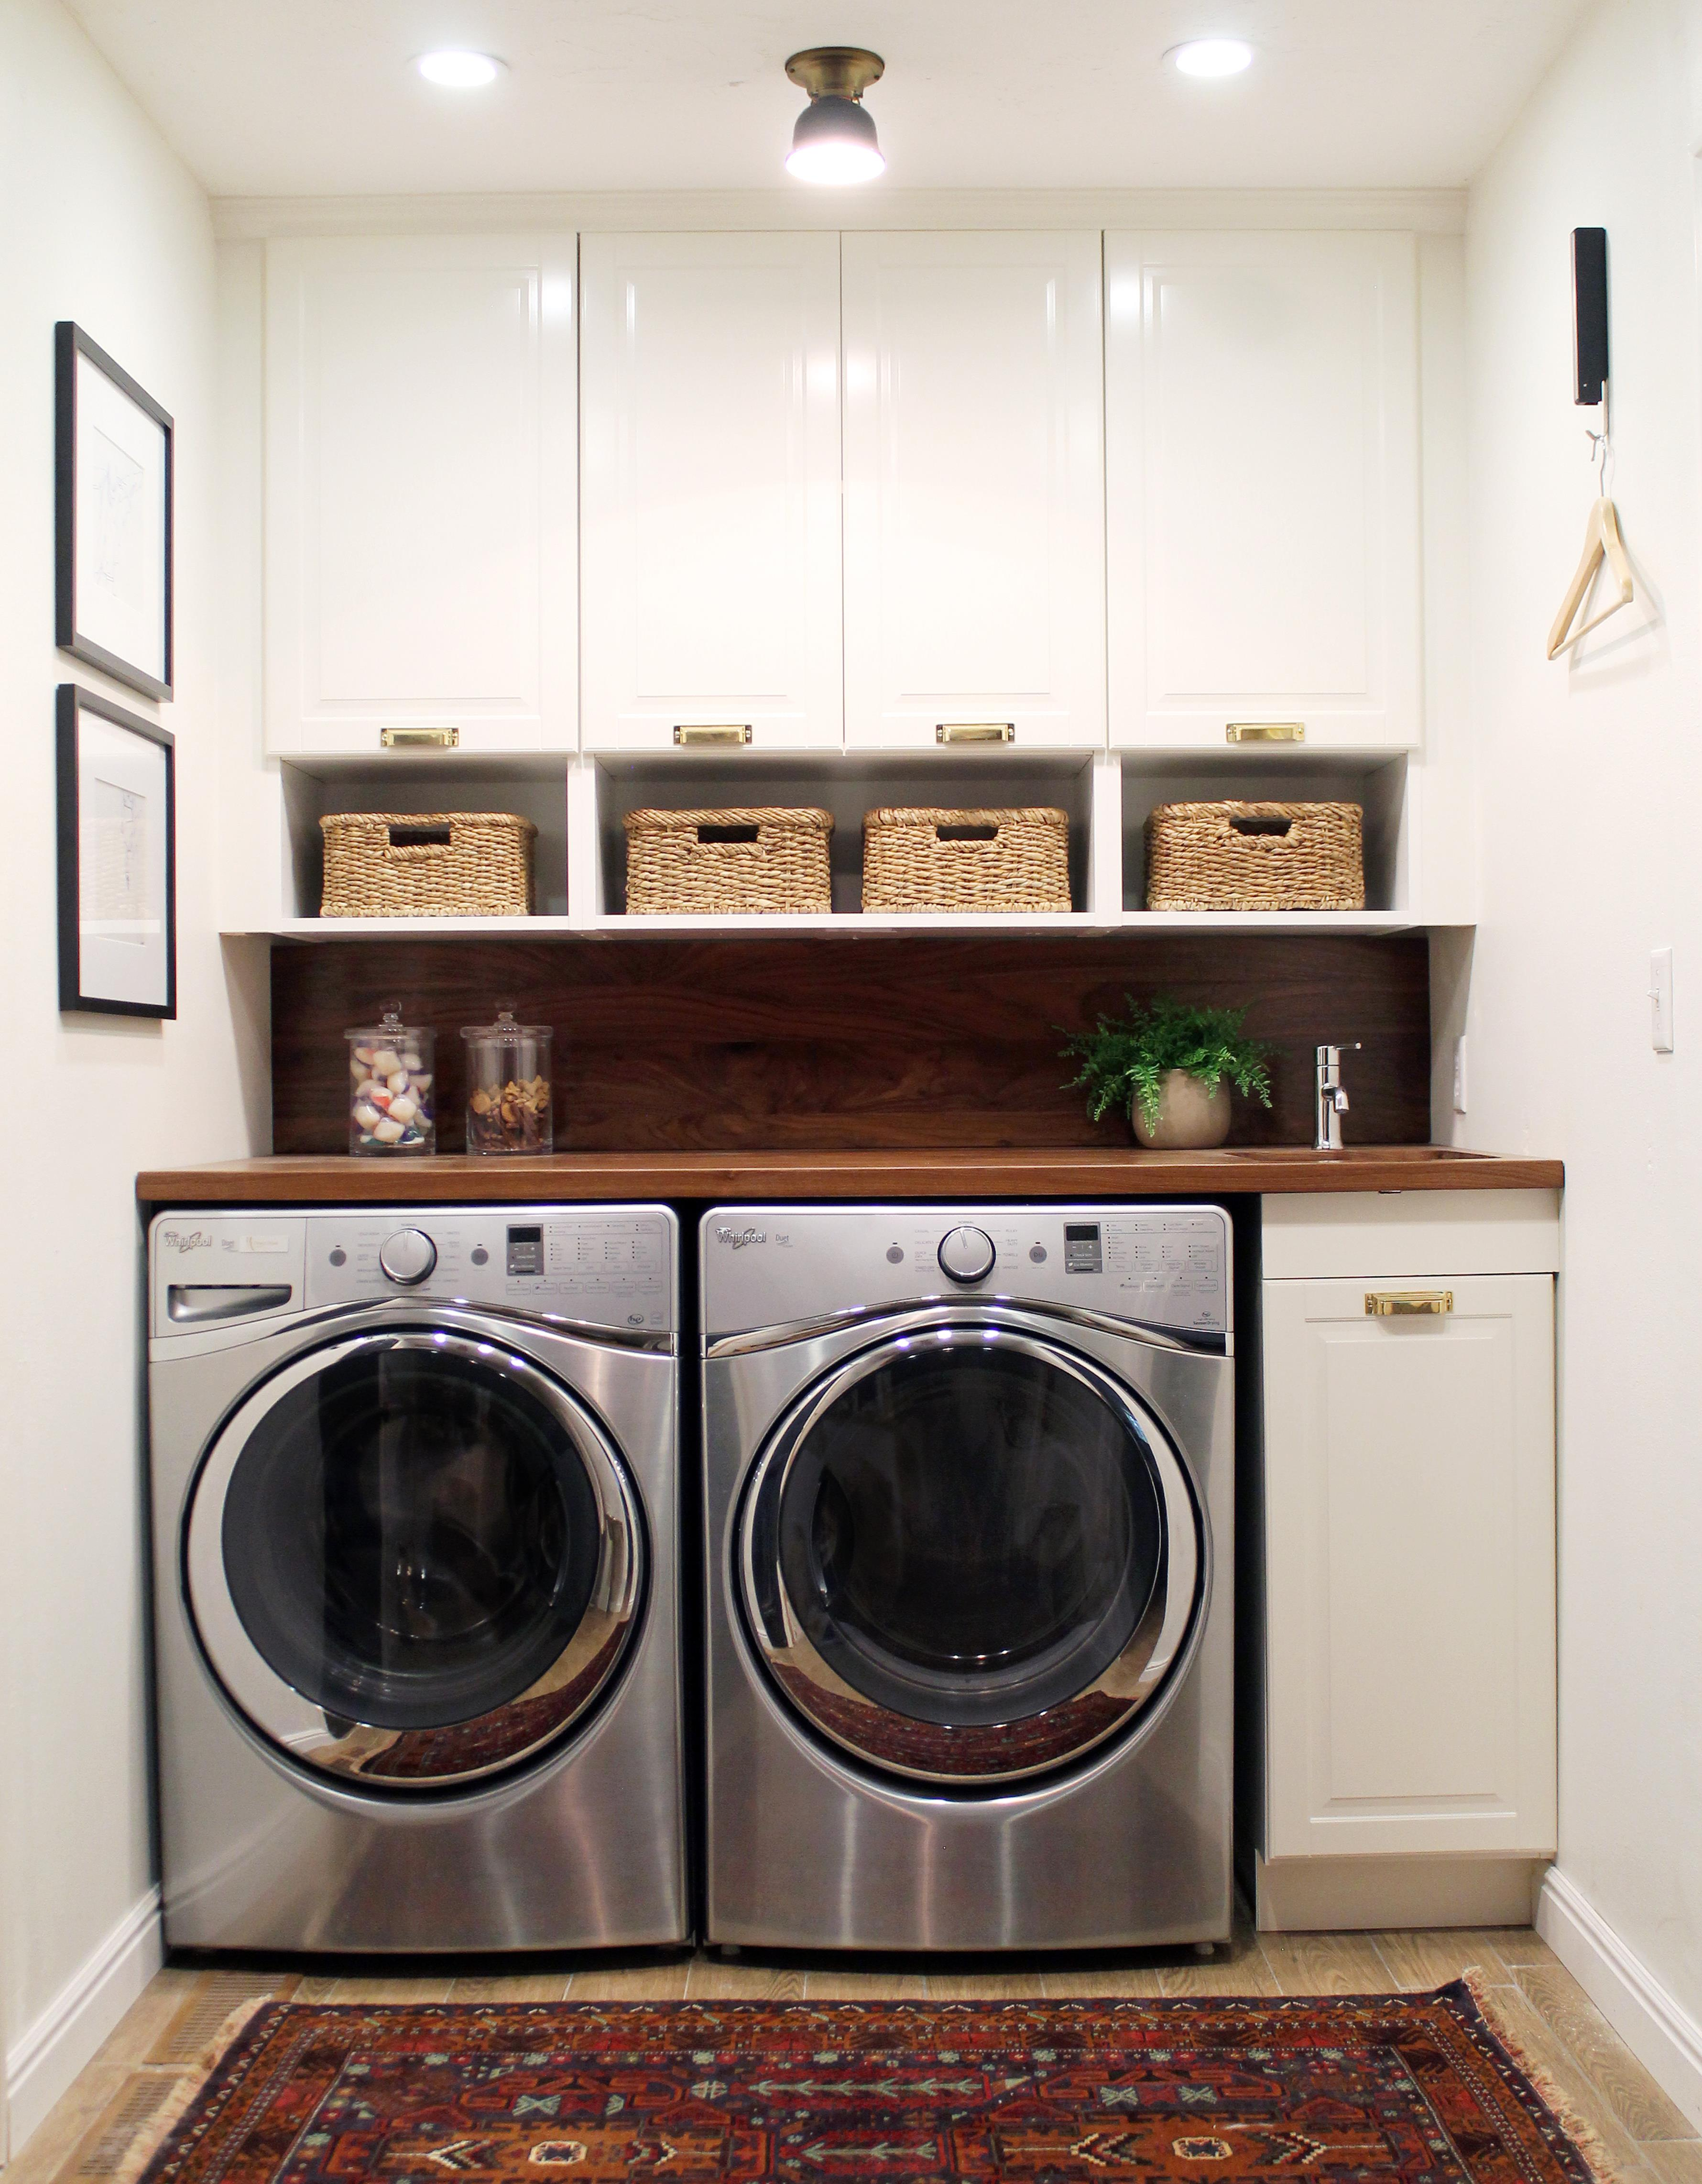 washer room renovation laundry combined door classy bathroom combo simple decorating and utility on home toilet design dryer ideas small in new kitchen house with under